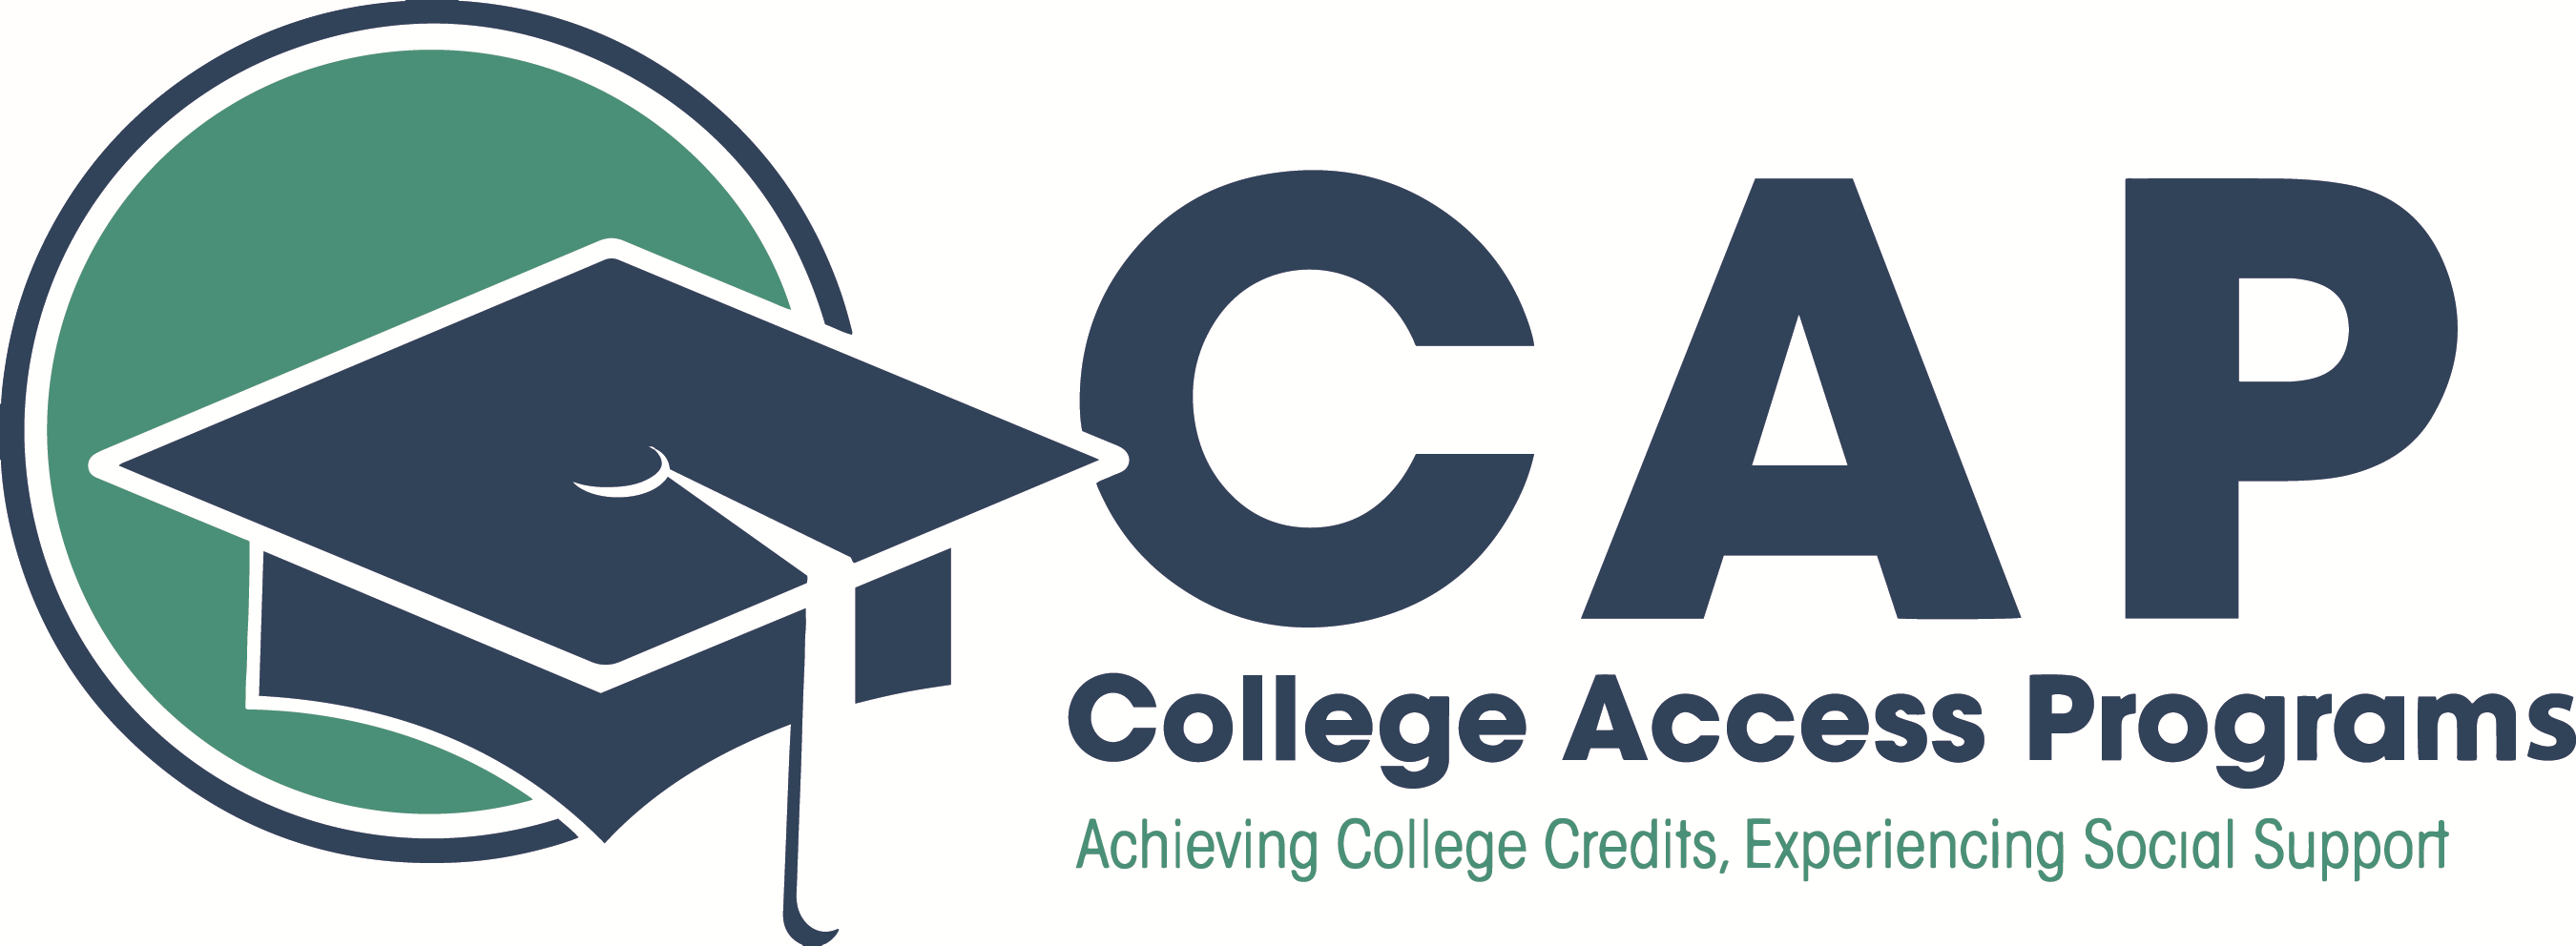 College Access Programs Logo1